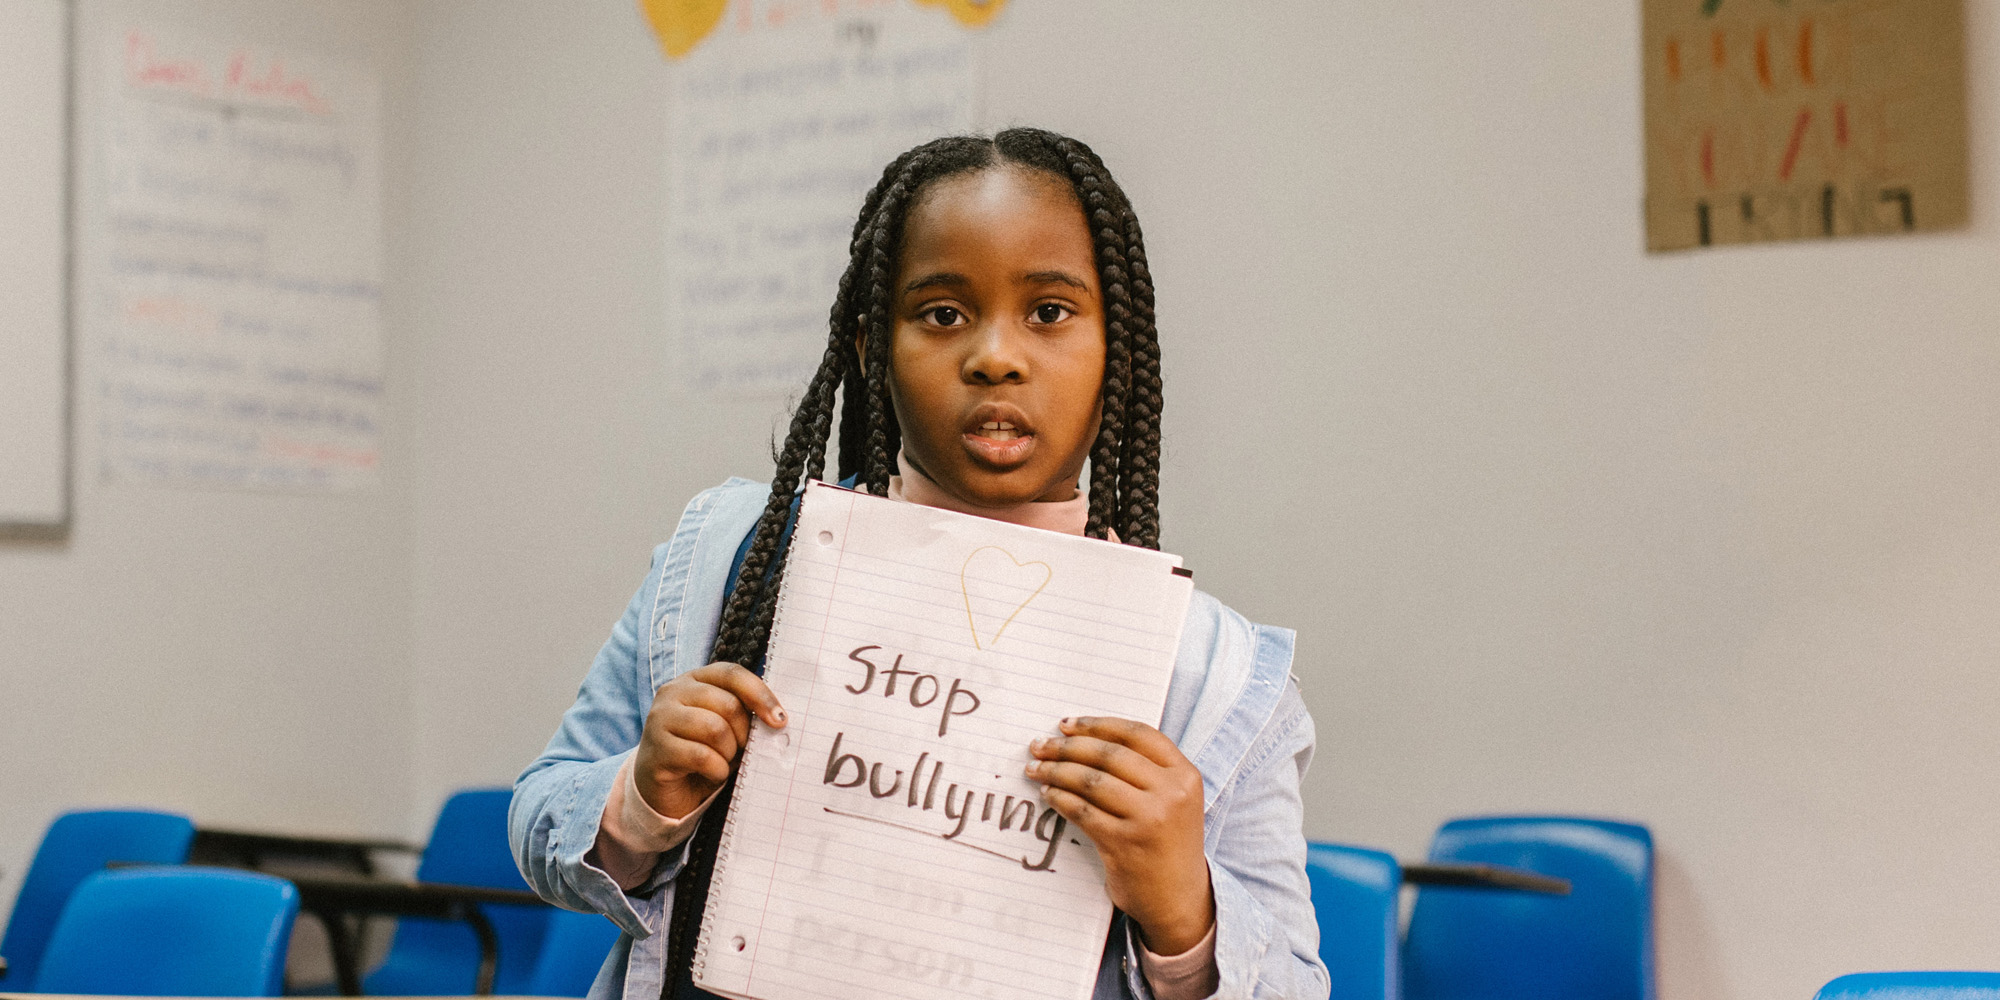 Dear-Empower-You-Stop-Bullying-Child-Holding-Poster-2